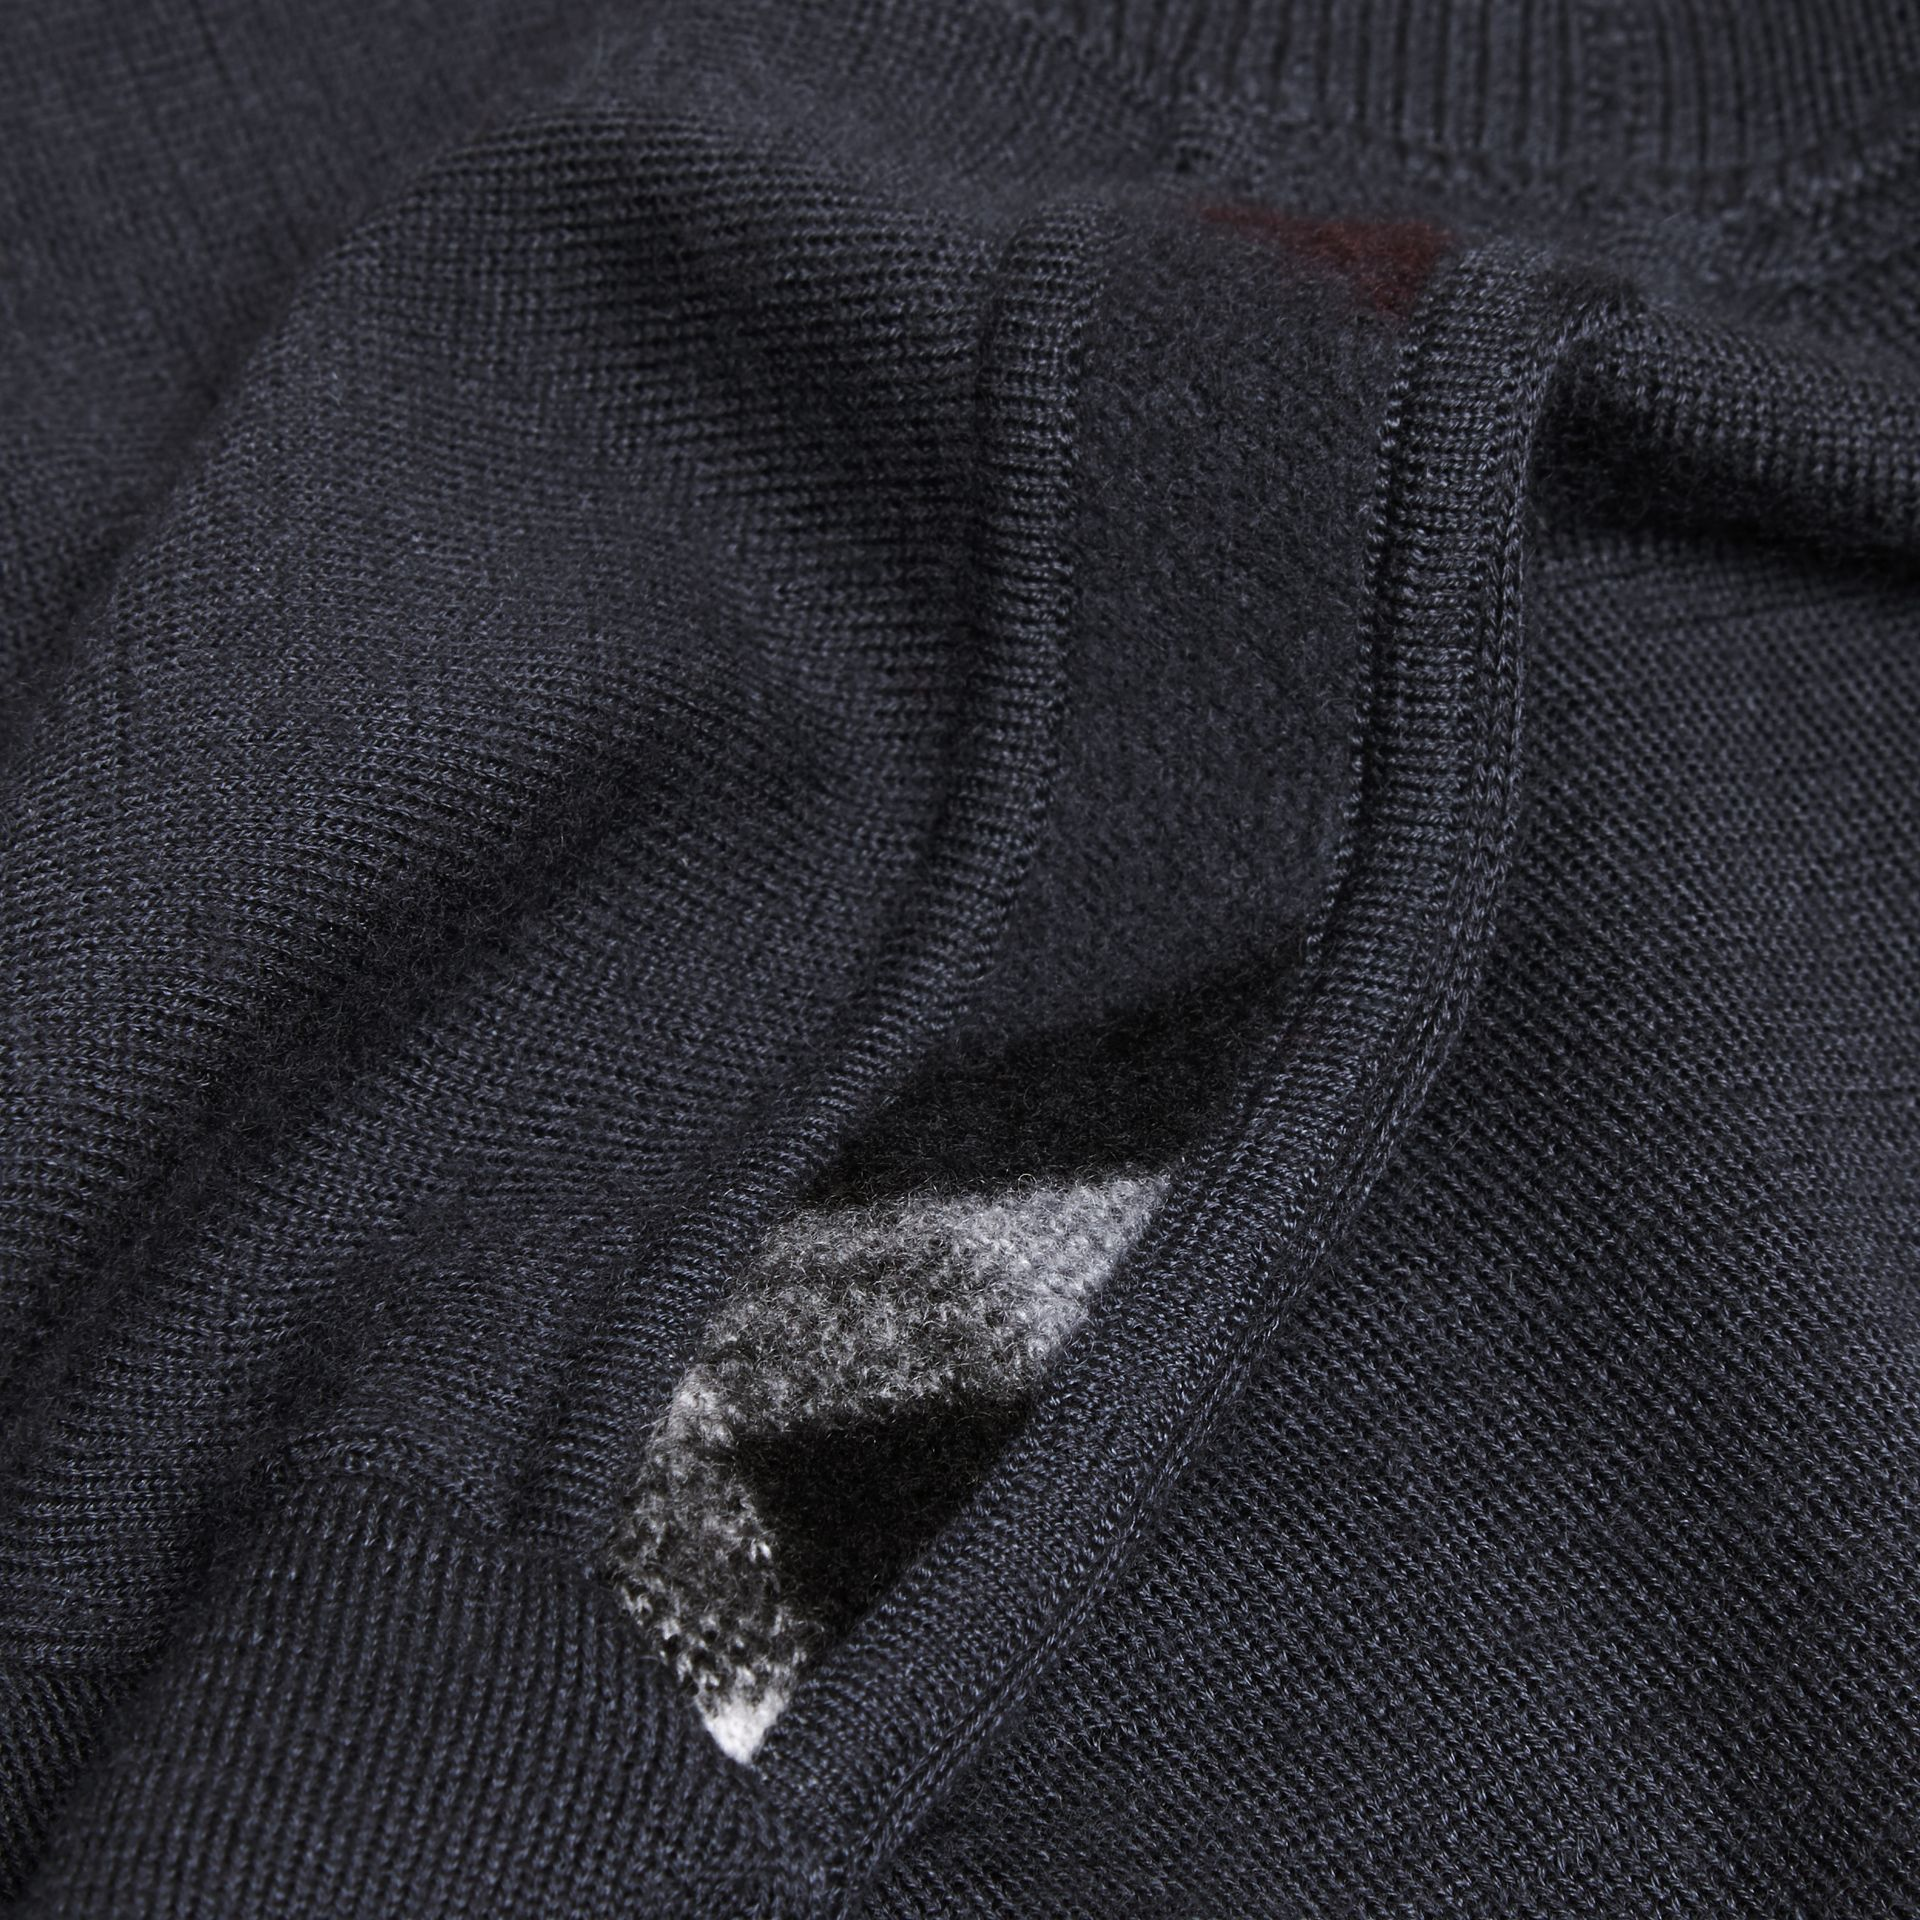 Dark grey melange Lightweight Crew Neck Cashmere Sweater with Check Trim Dark Grey Melange - gallery image 2